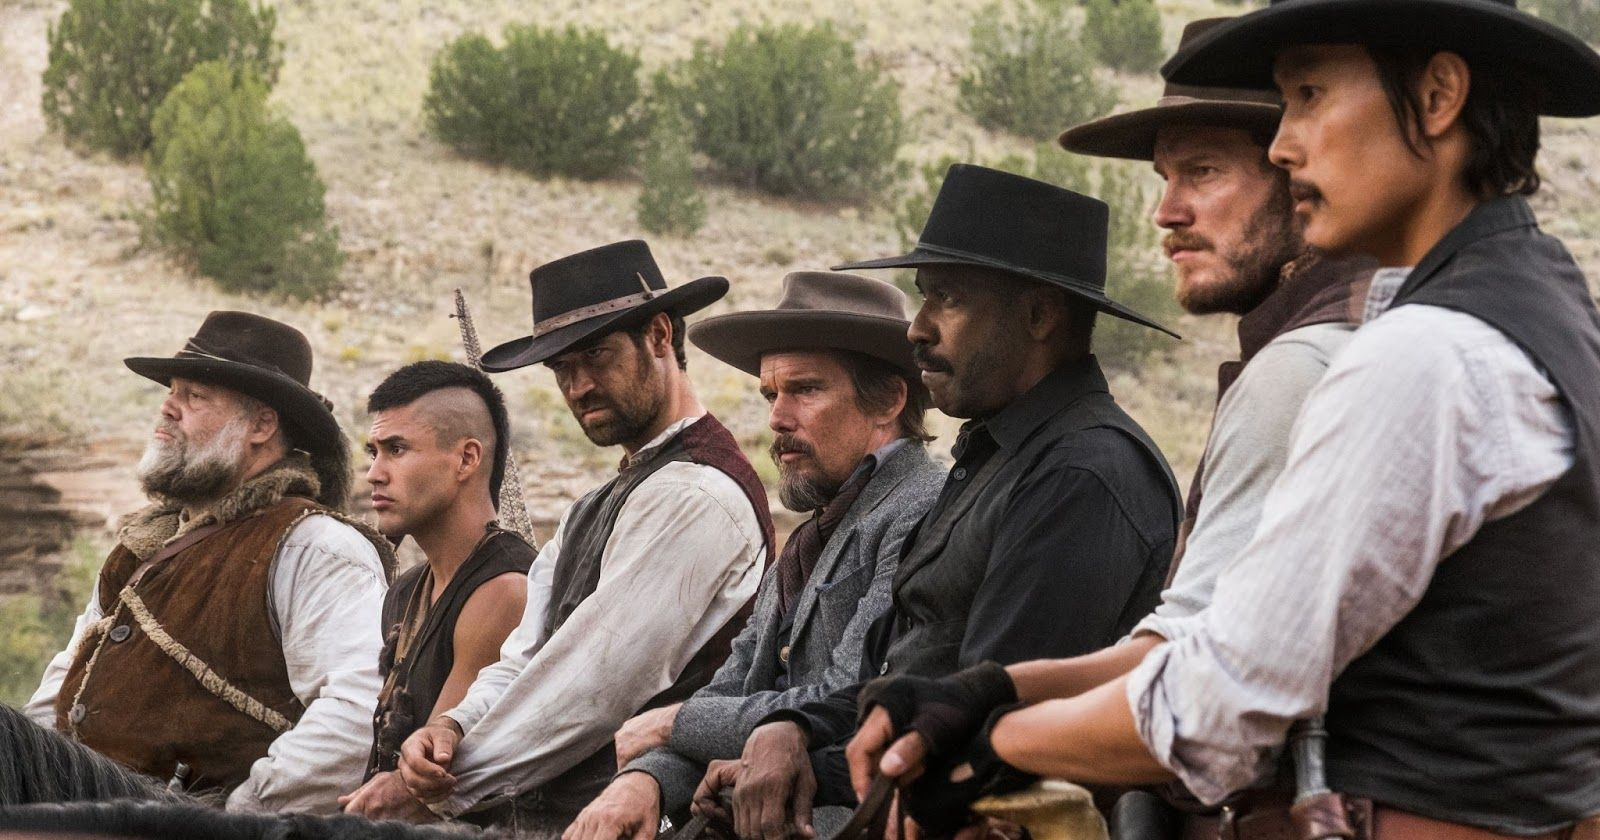 MOVIES: The Magnificent Seven - Review